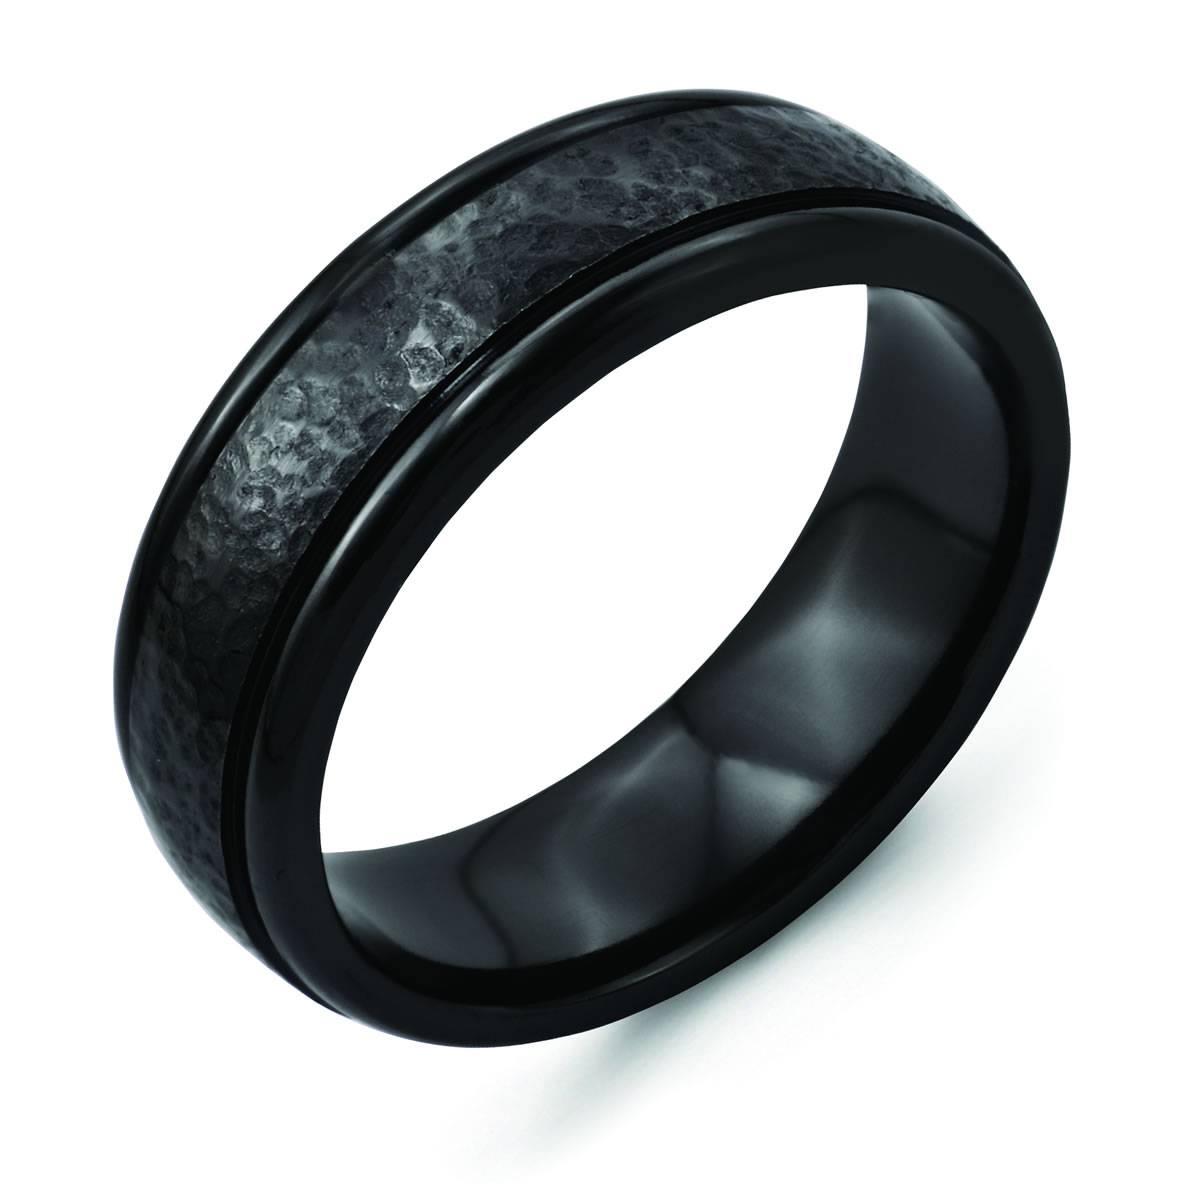 Titanium Black Ti Hammered Ridged Edge 7Mm Brushed Men's Wedding For Titanium Men Wedding Bands (Gallery 10 of 15)